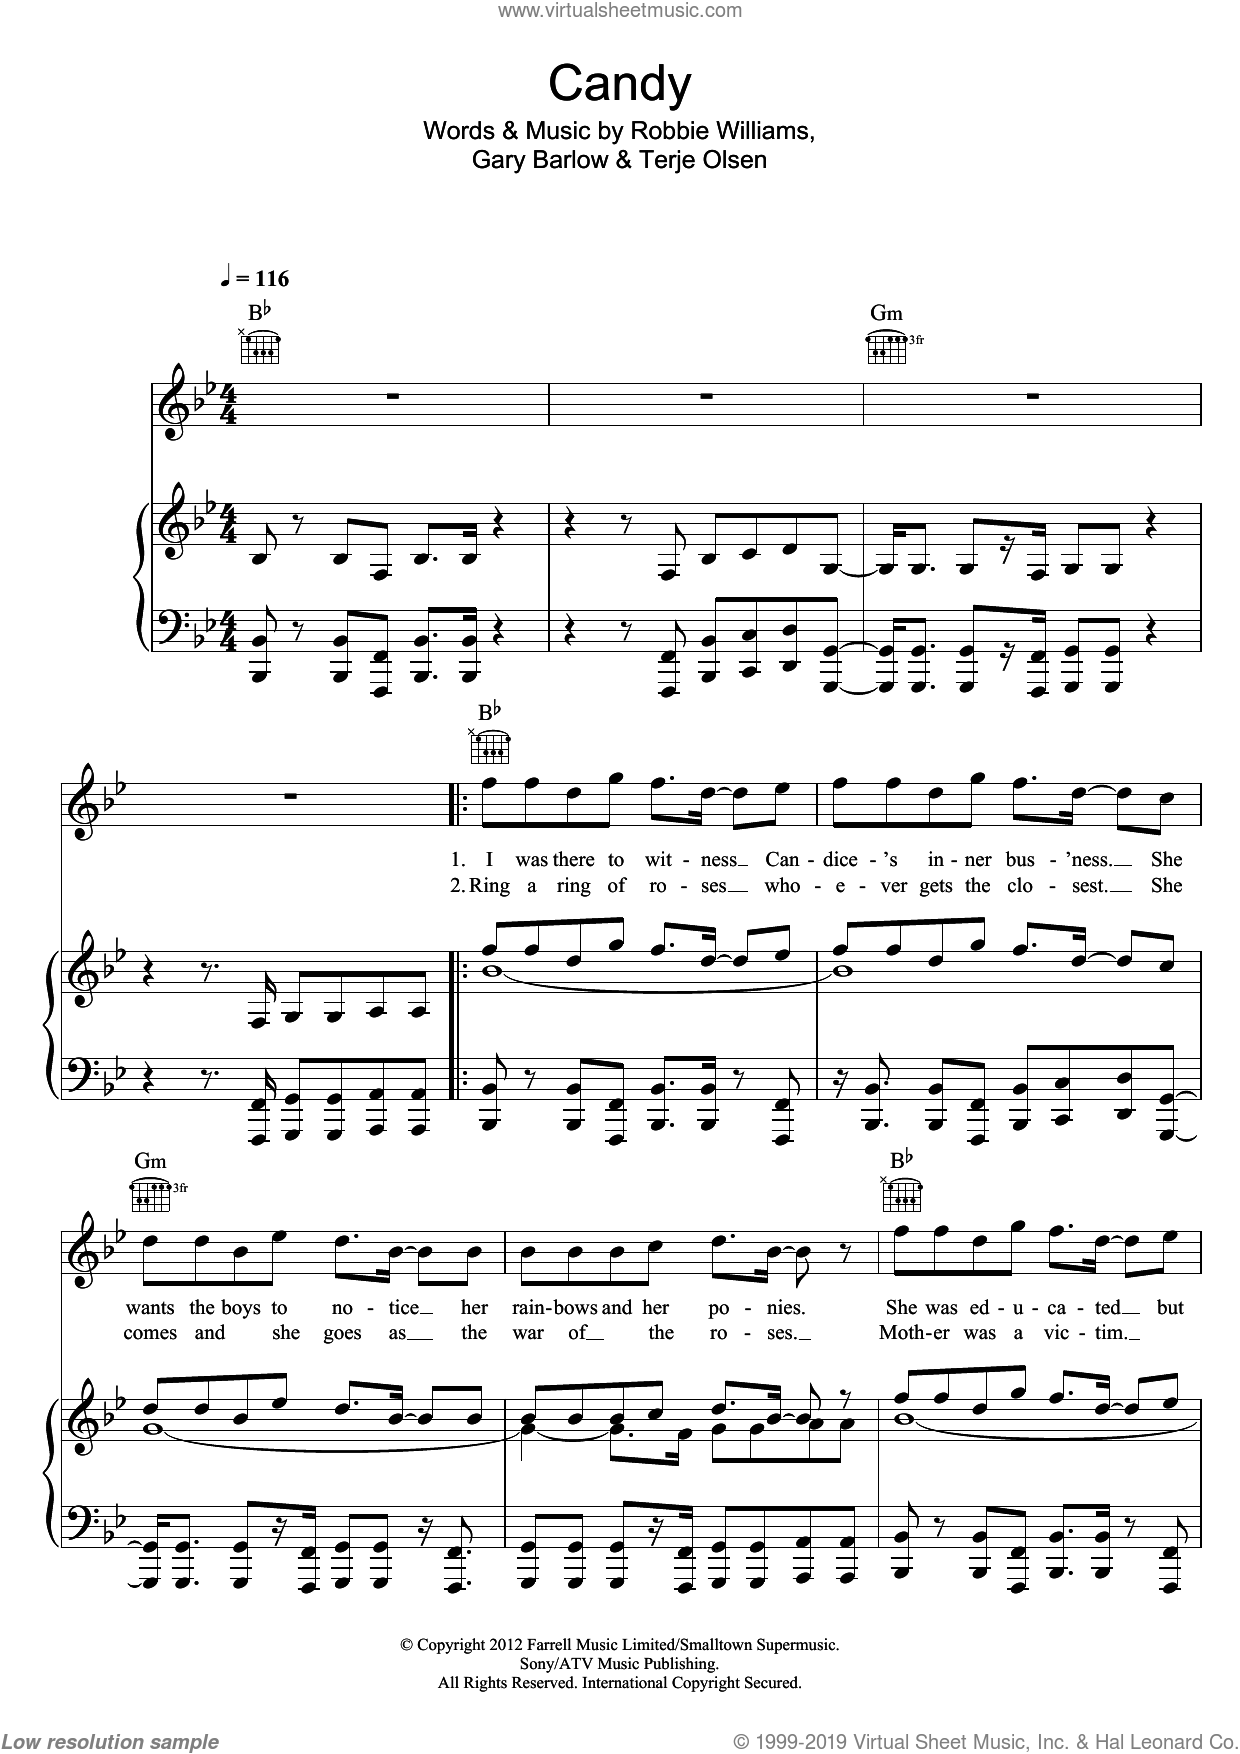 Candy sheet music for voice, piano or guitar by Terje Olsen